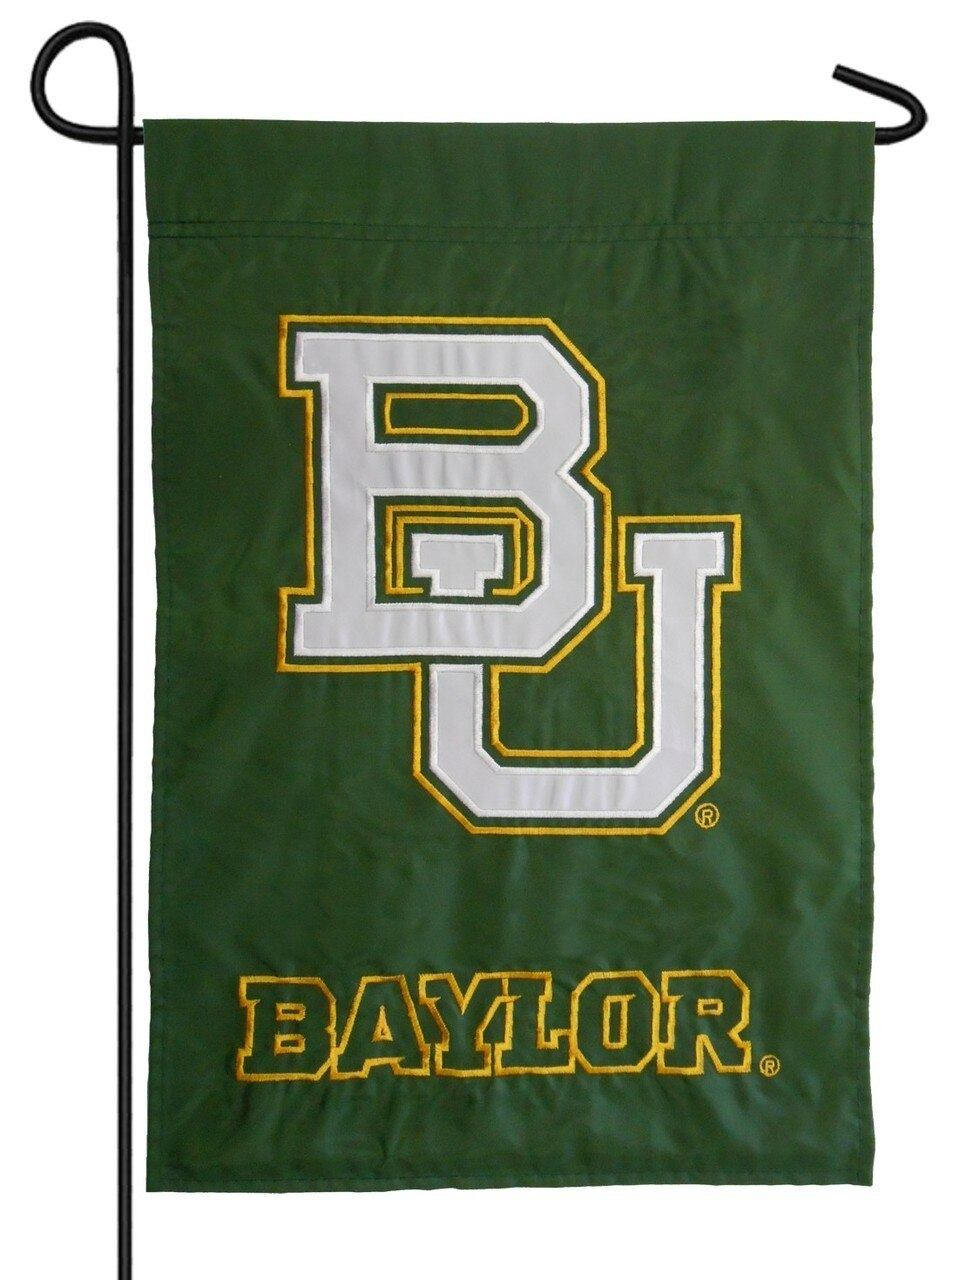 Baylor Bears Applique Garden Flag